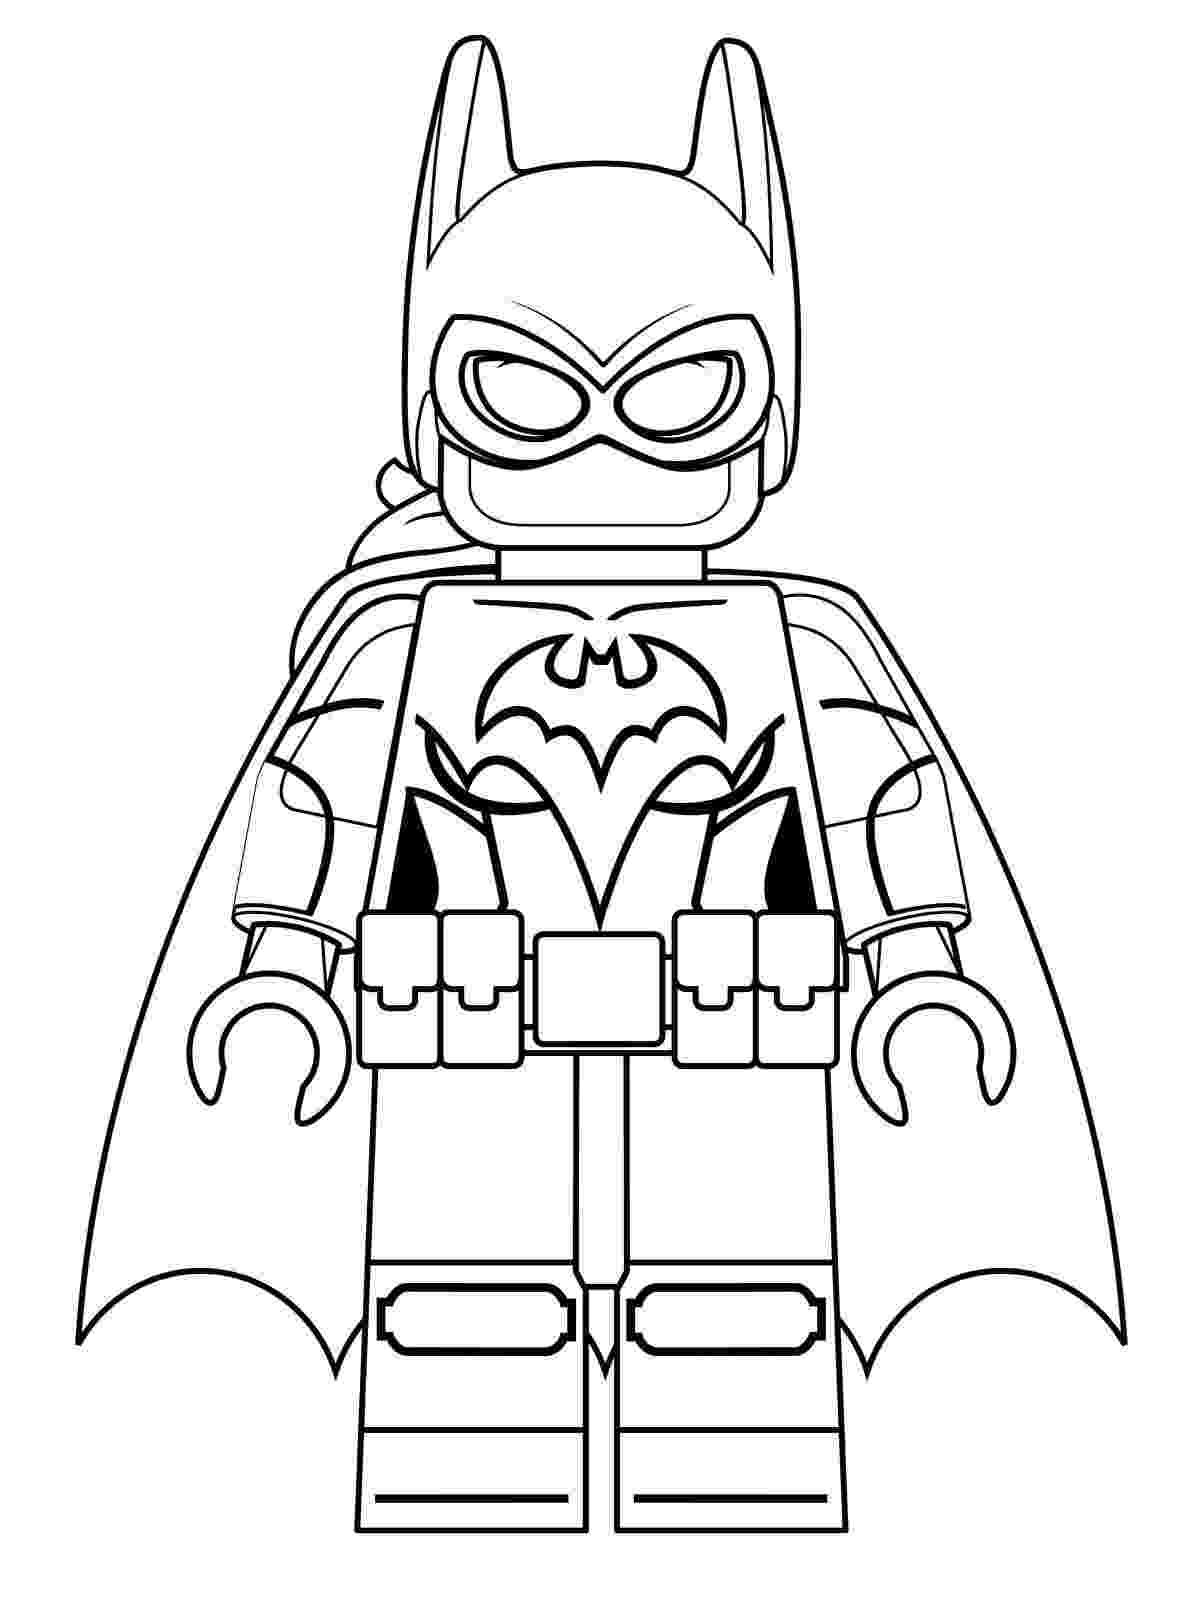 free printable coloring pages lego batman lego batman coloring pages best coloring pages for kids free printable coloring lego batman pages